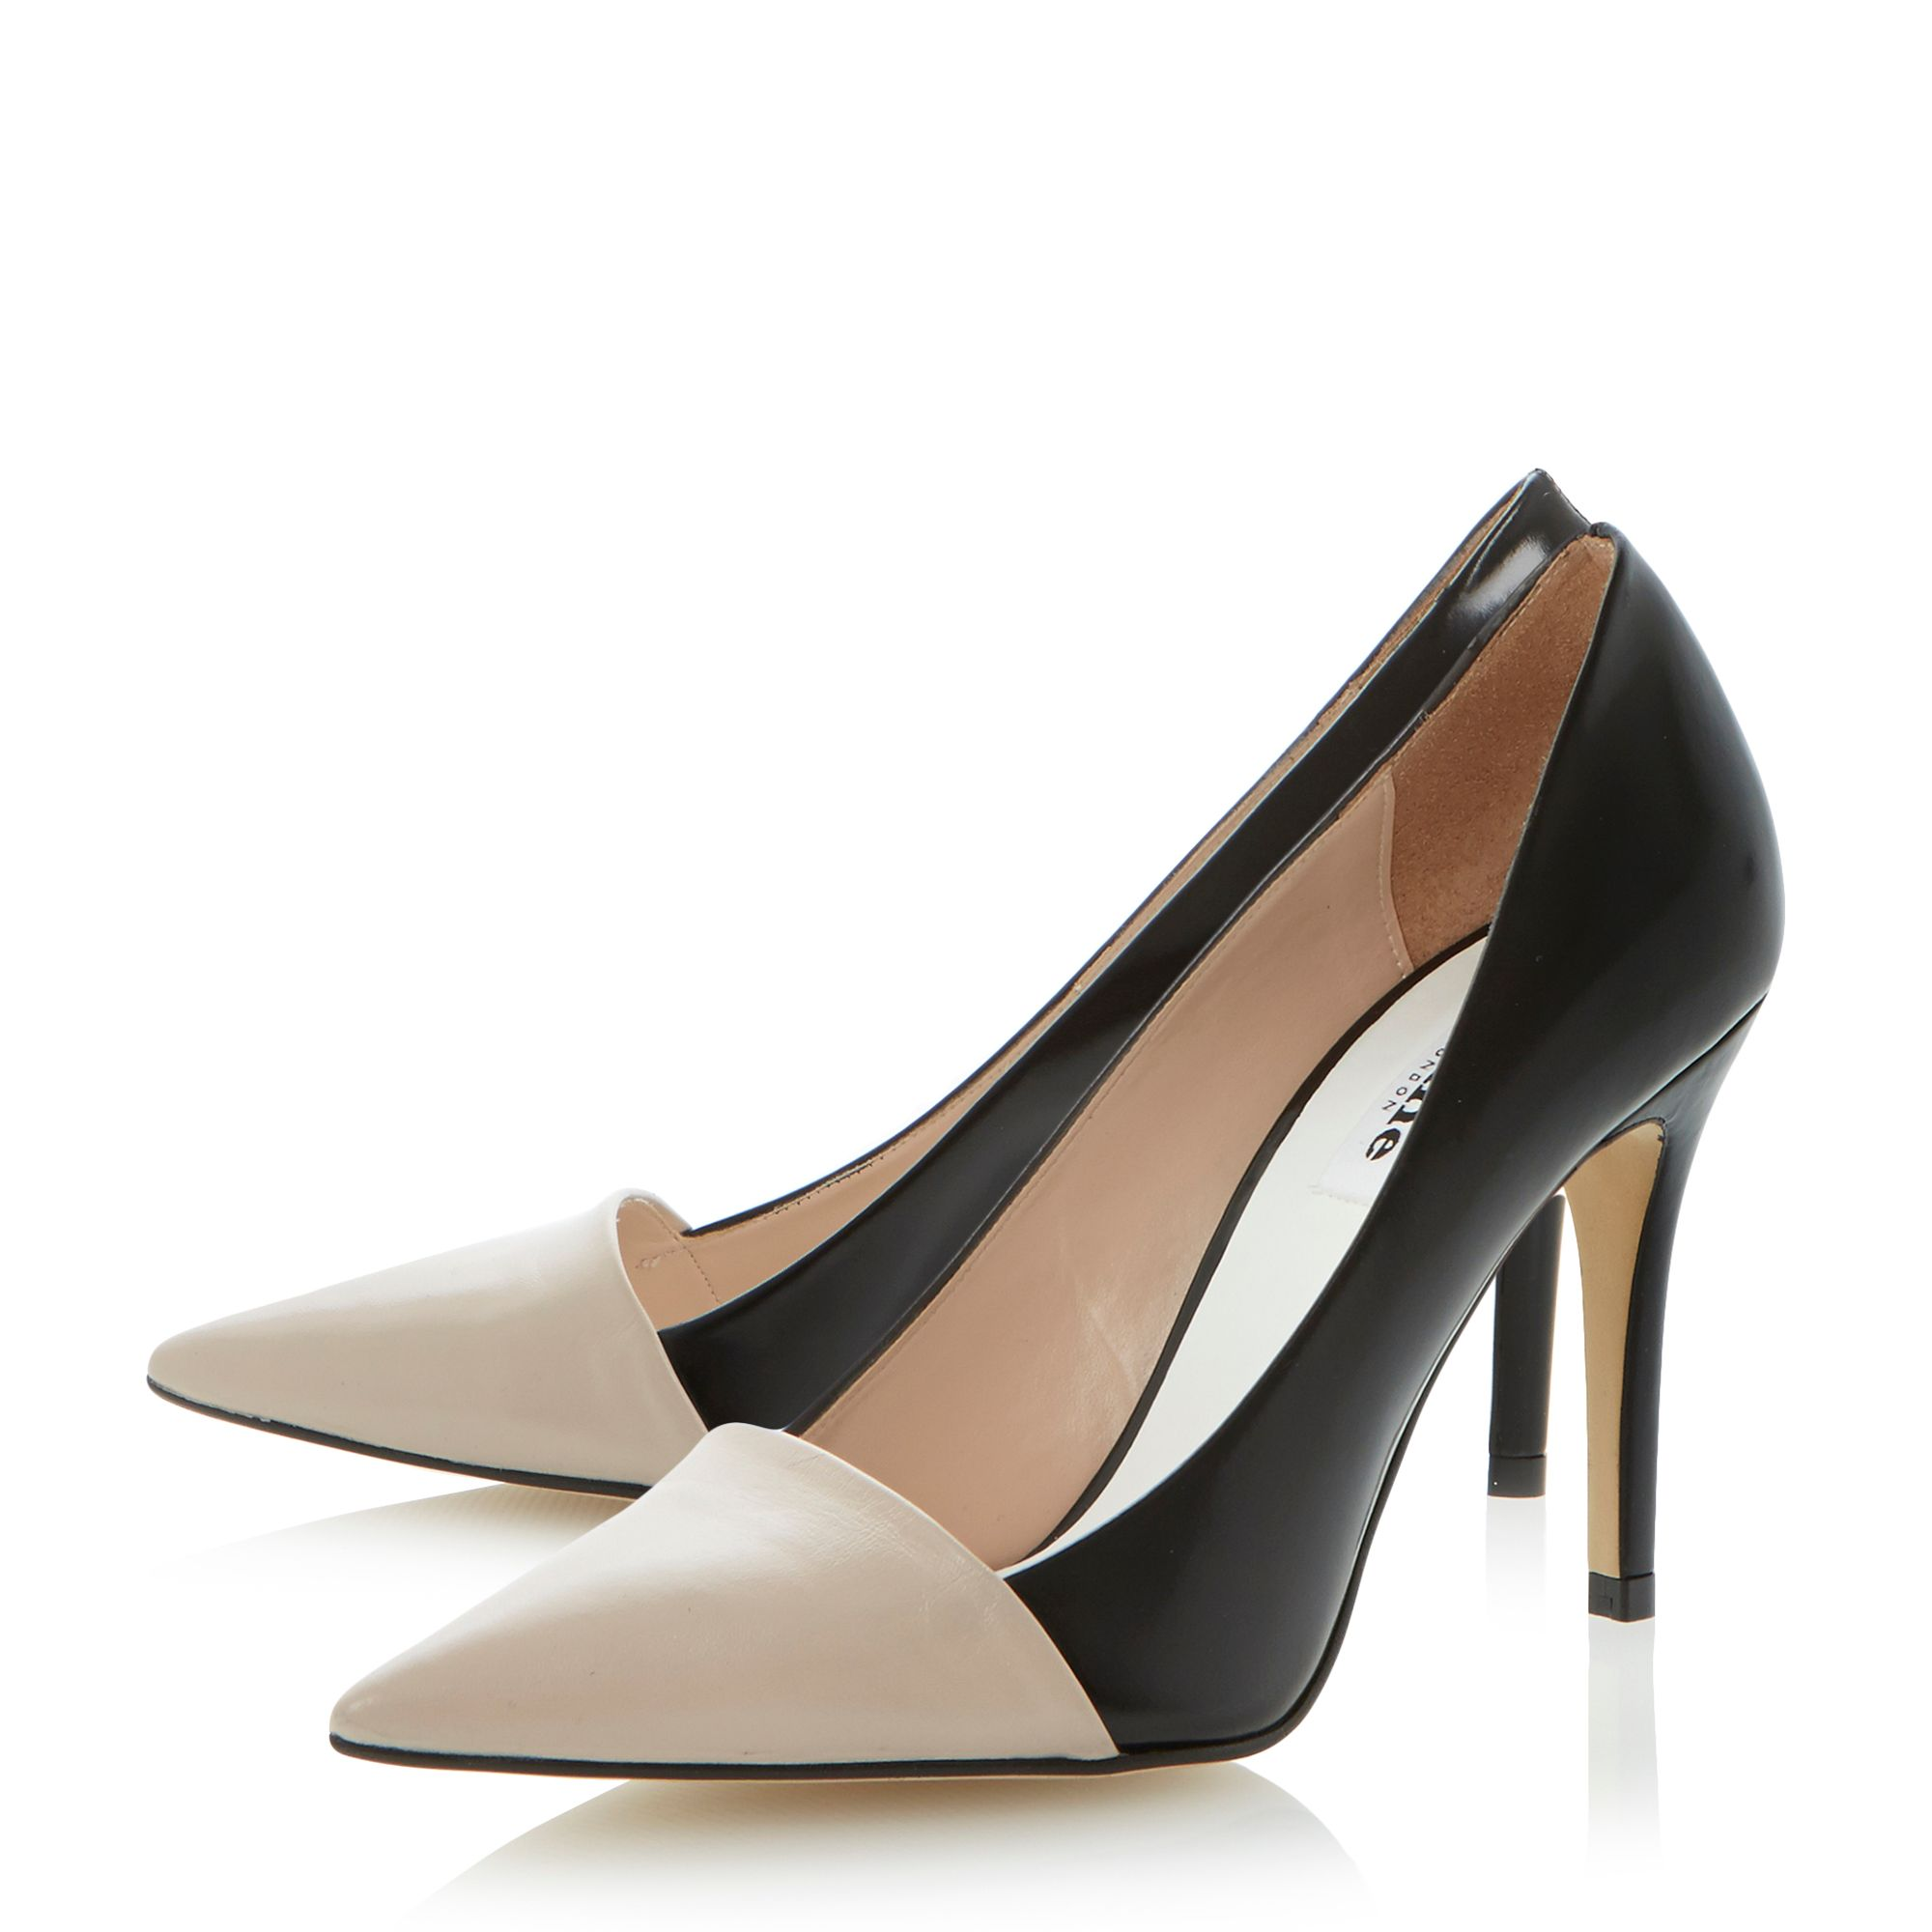 Amylyn overlasted vamp pointed toe court shoes